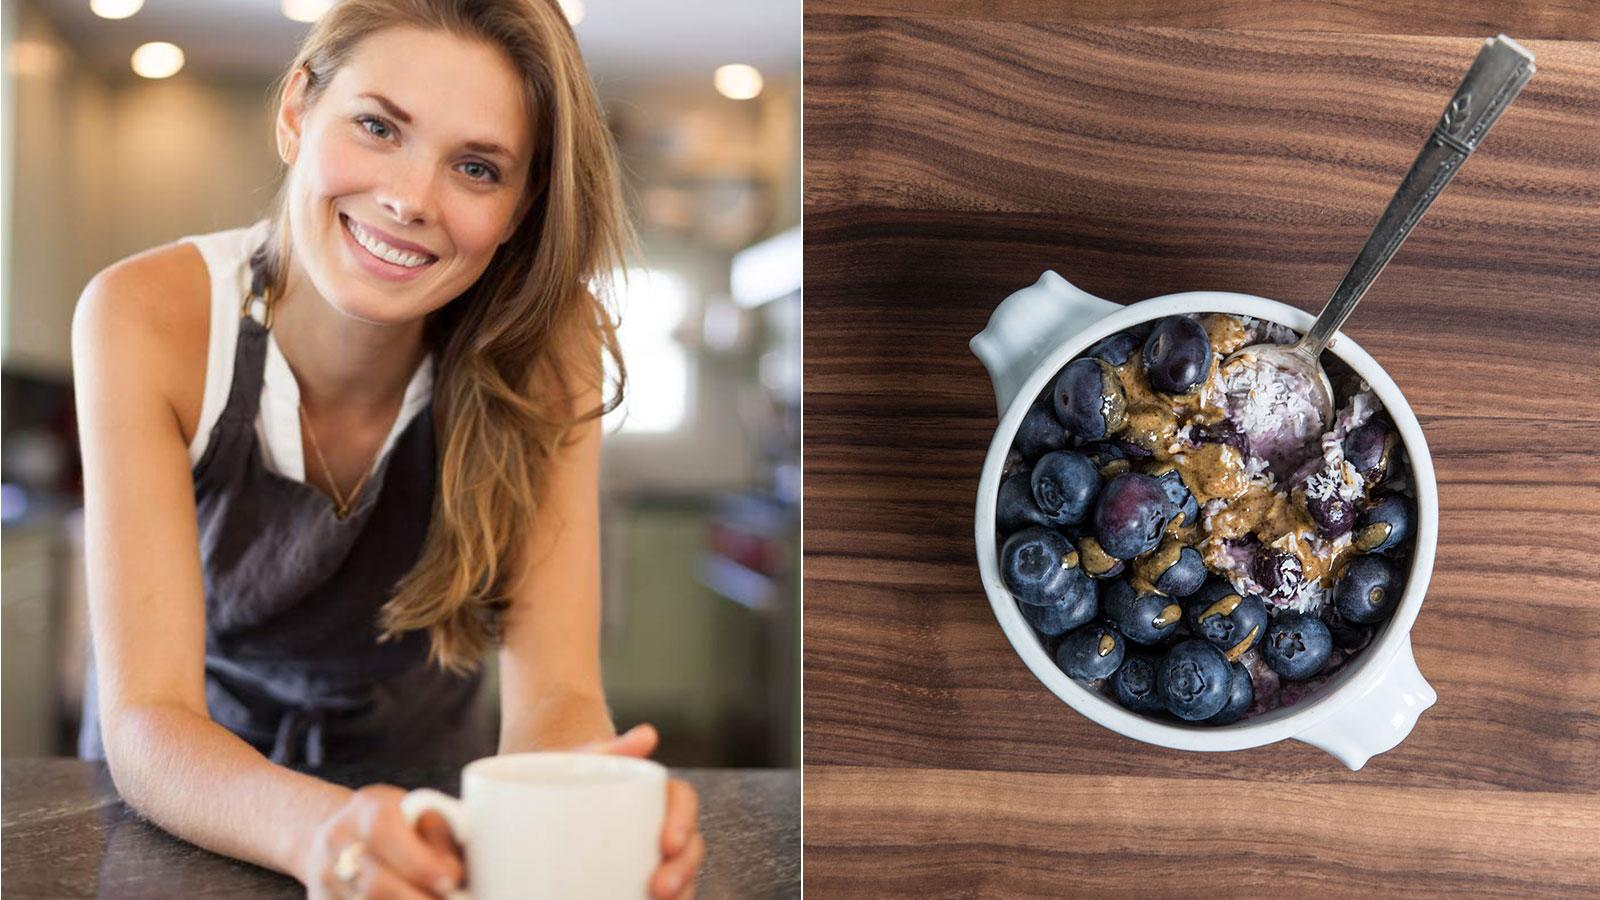 5 Quick and Healthy Breakfasts Tips from Holistic Chef Laura Lea